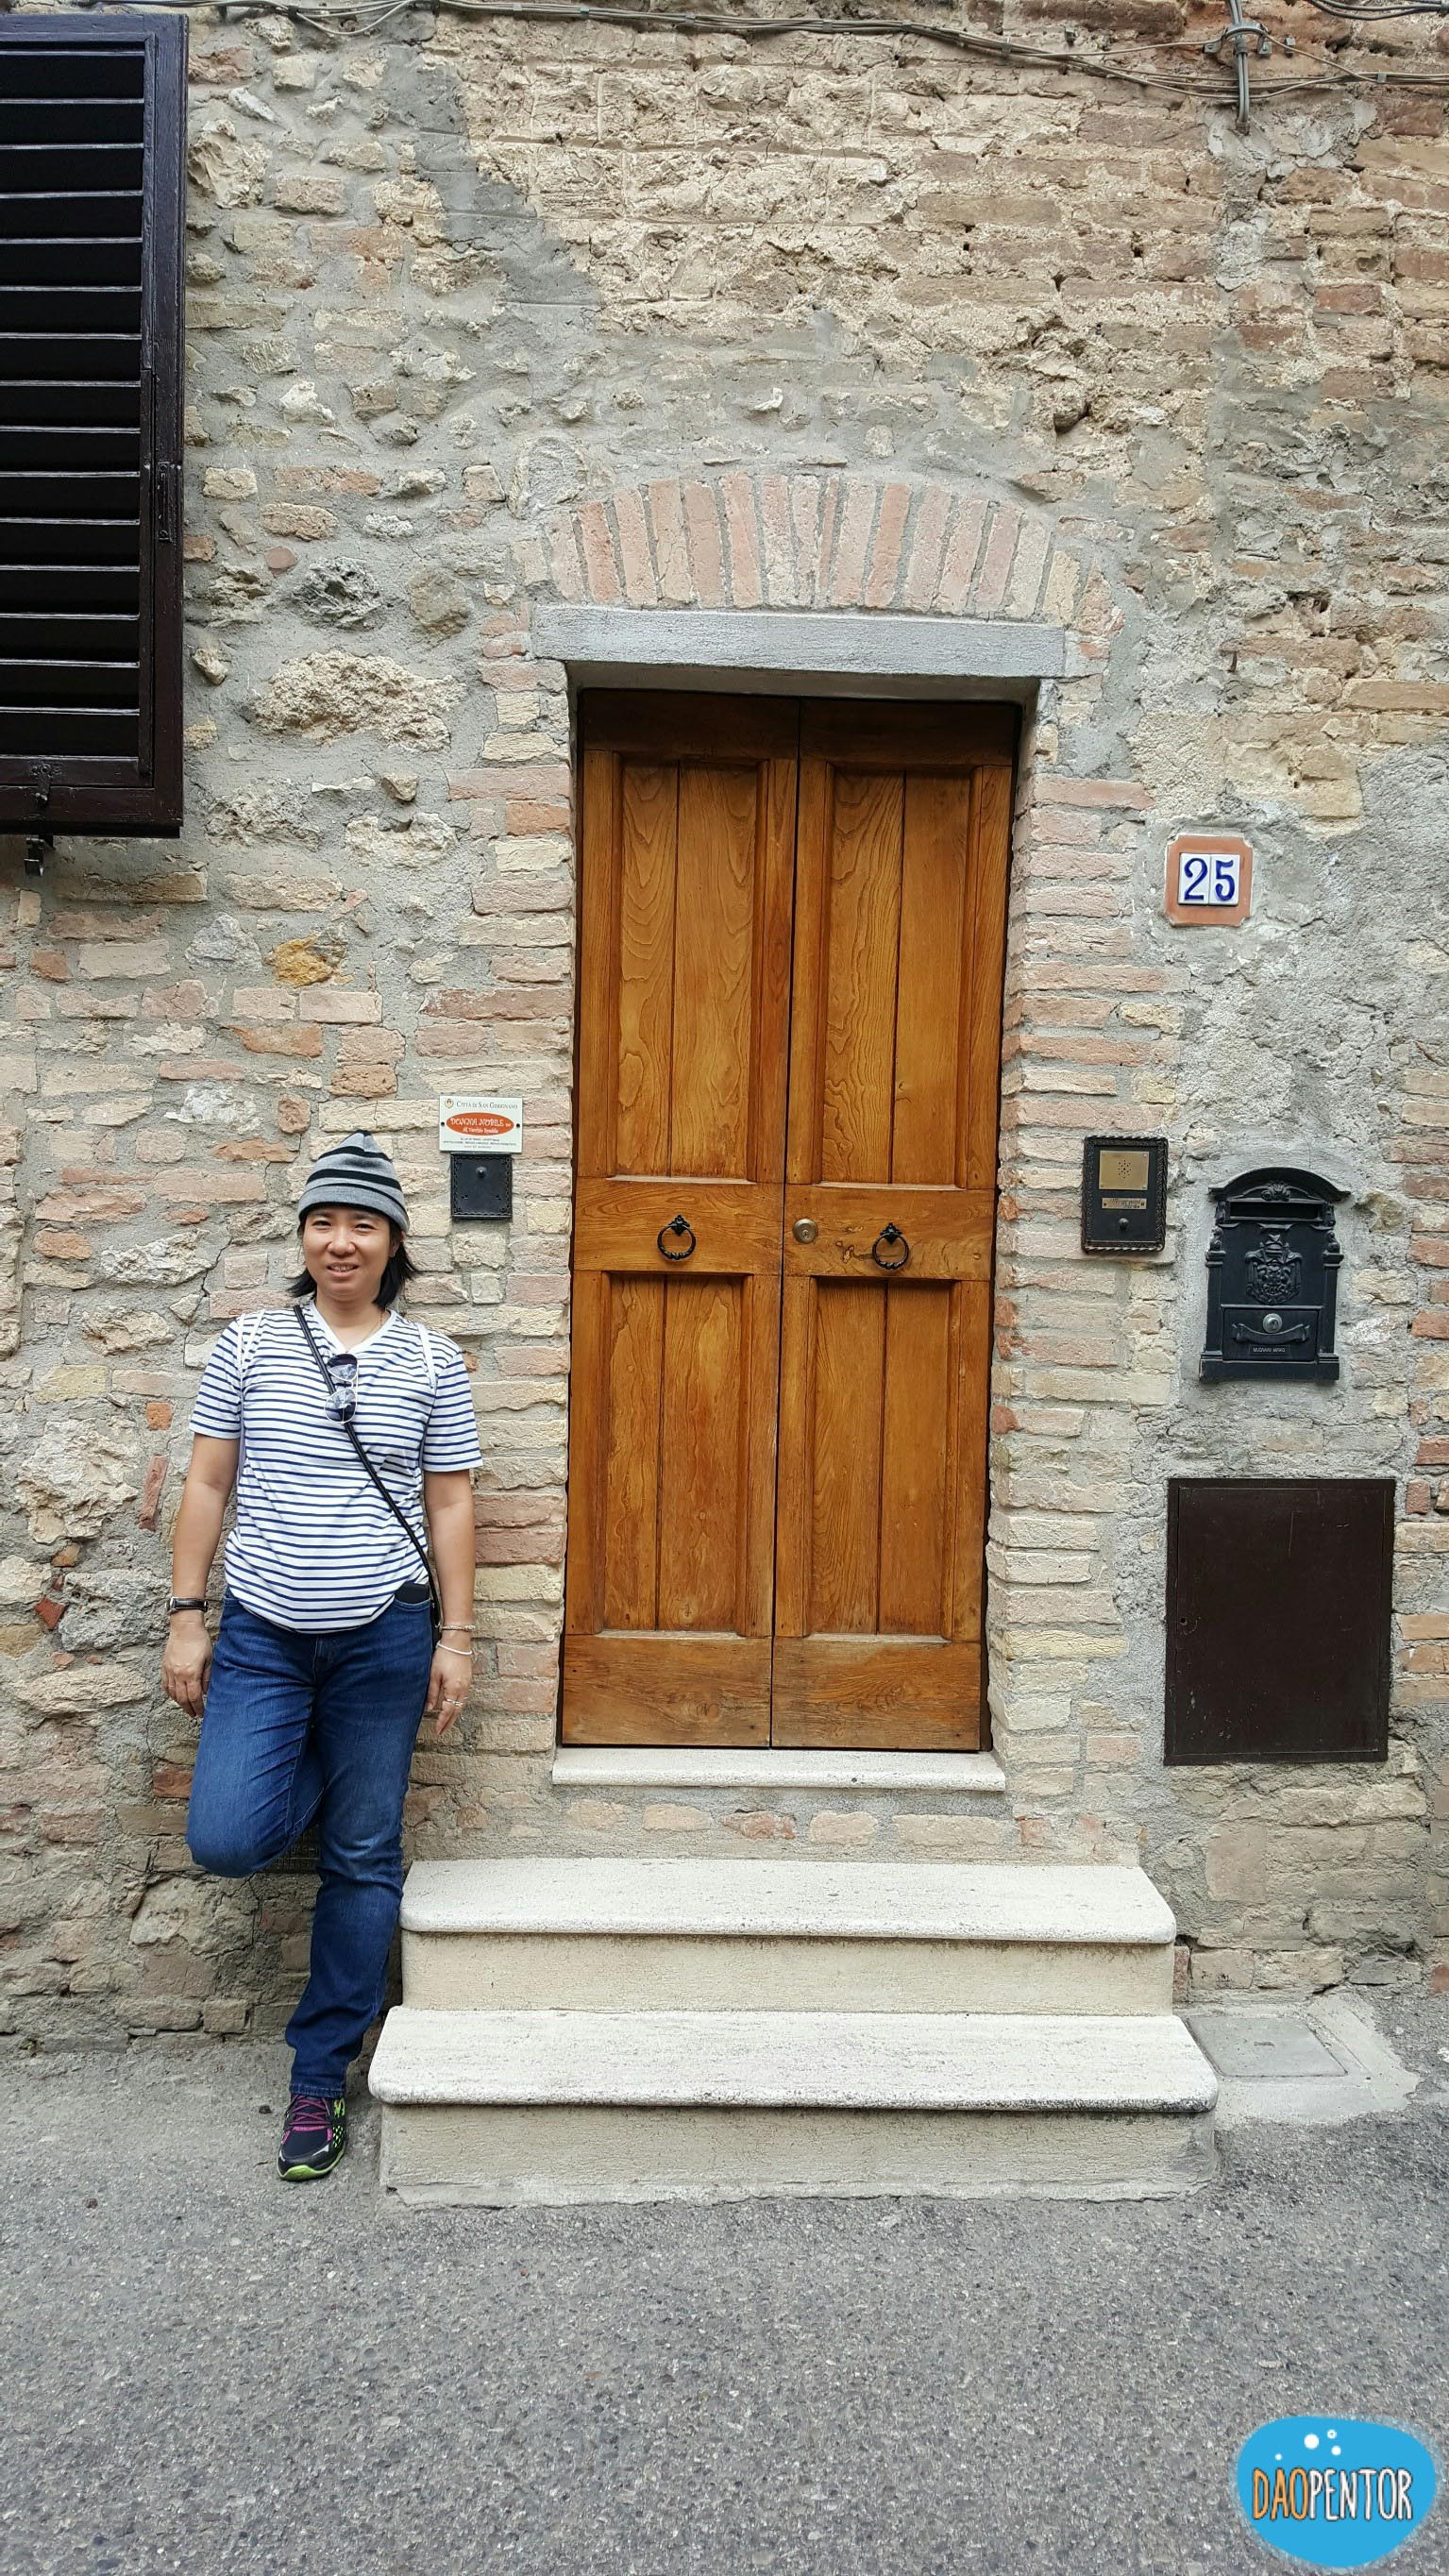 sangimignano trip with daopentorpage